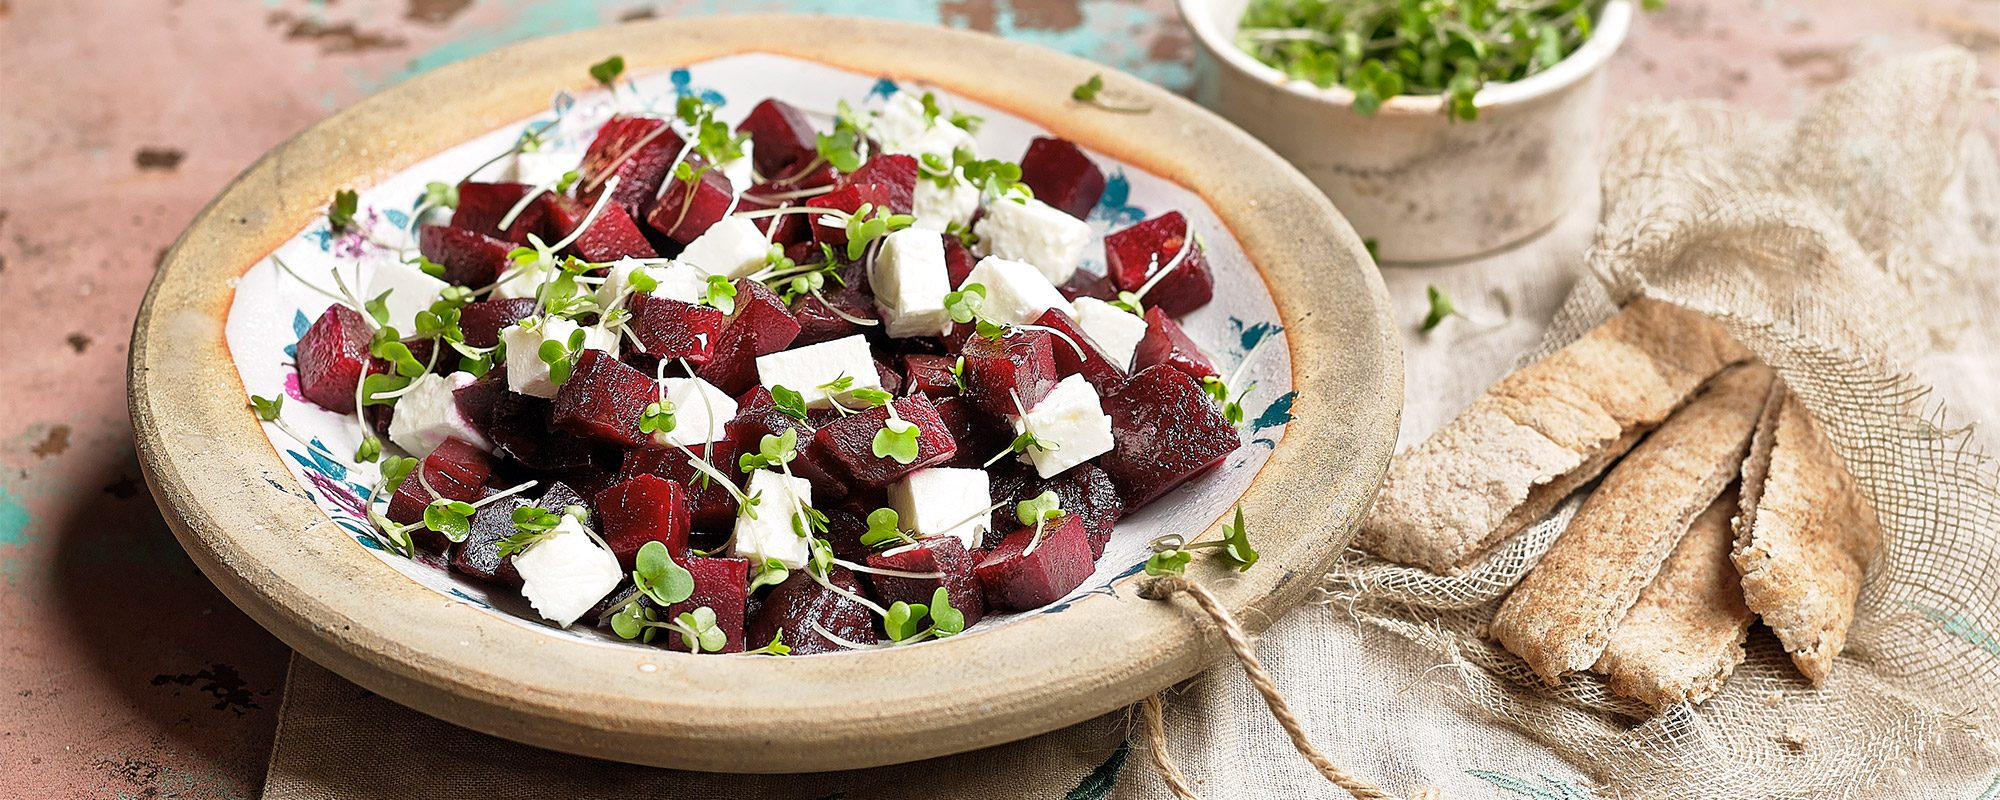 Salad cress, beetroot and feta salad